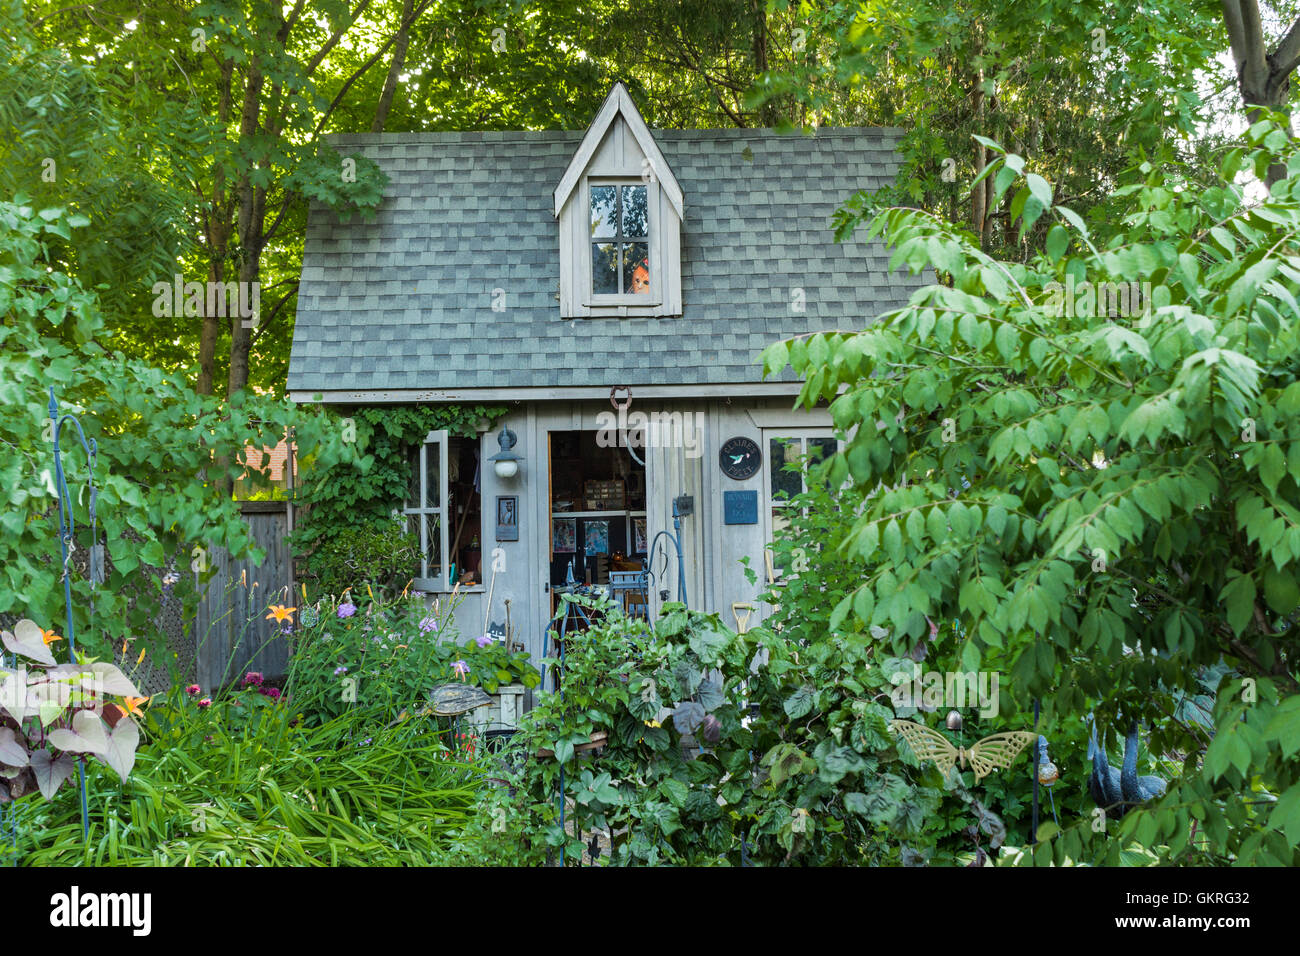 Large garden shed with dolls face in the window - Stock Image